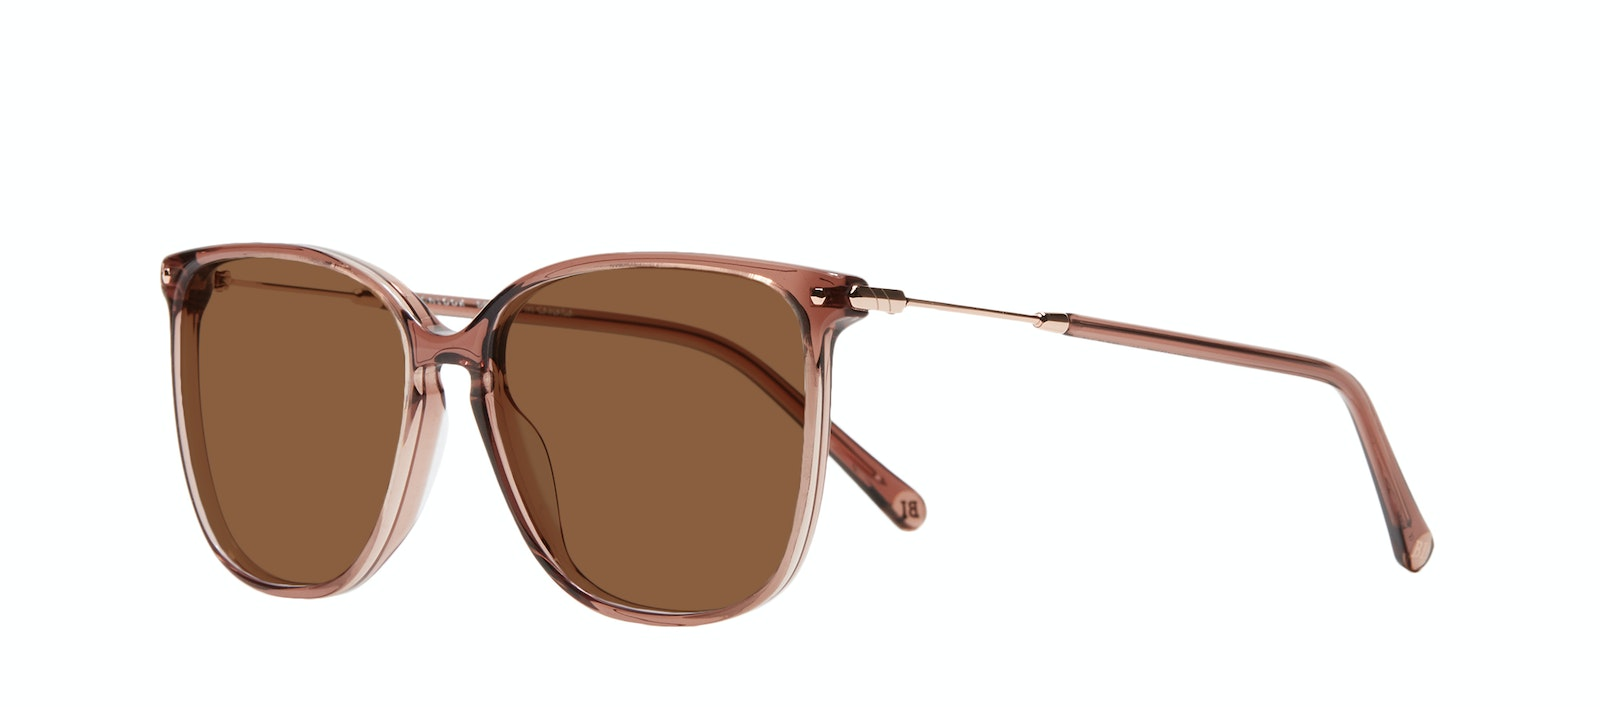 Affordable Fashion Glasses Square Sunglasses Women Sonia M Dark Terra Tilt